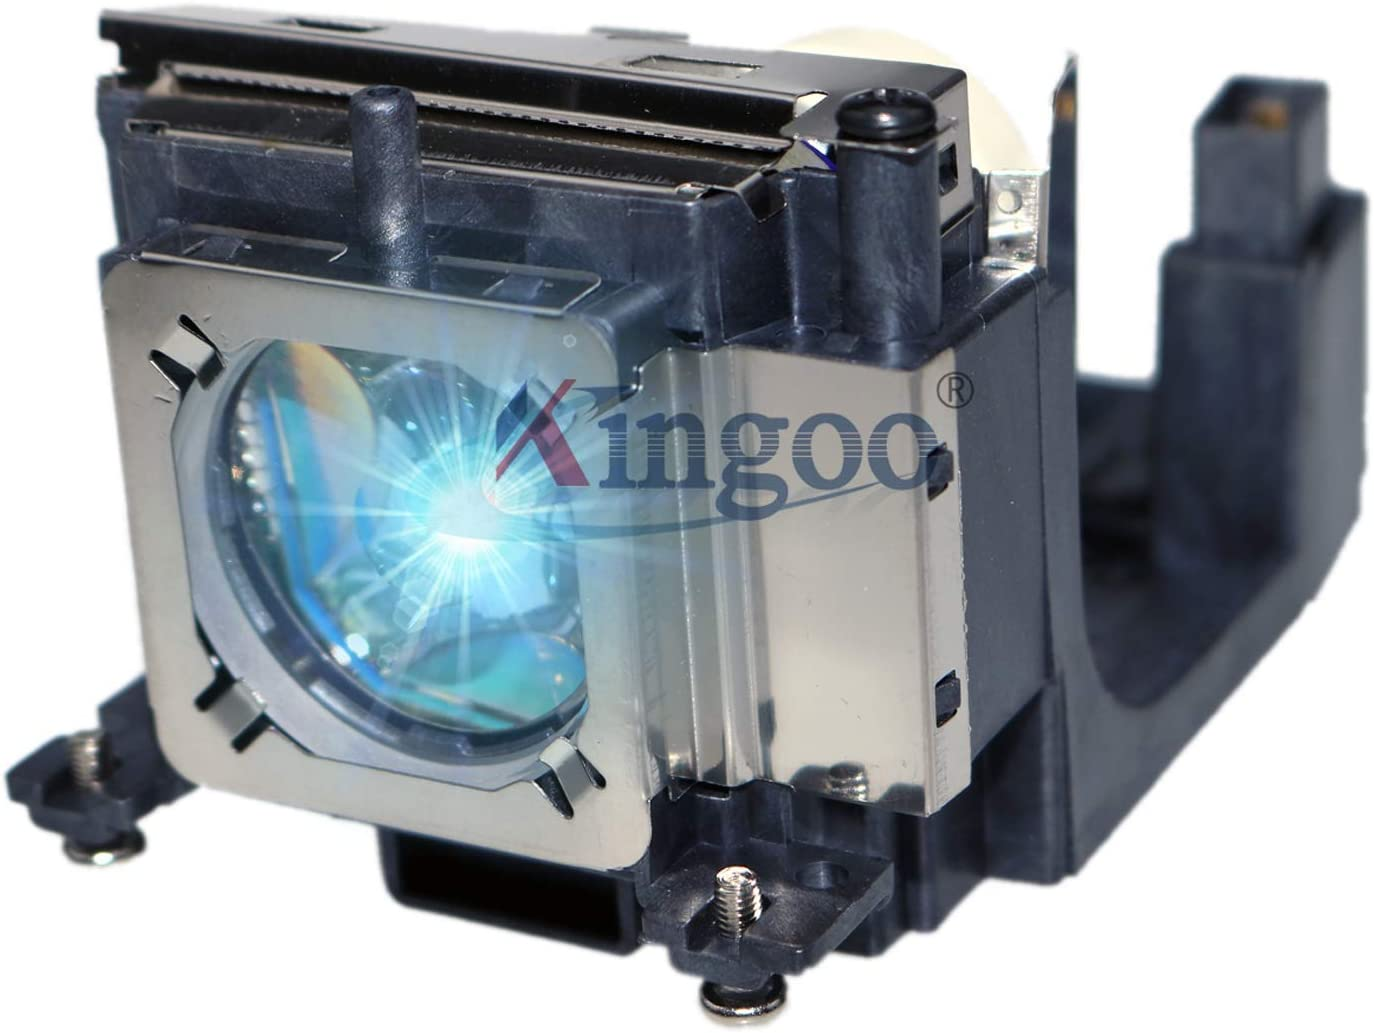 Kingoo Excellent Projector Lamp Cheap super special price Virginia Beach Mall for Eiki LC-XBL25 LC-XB LC-XBL20